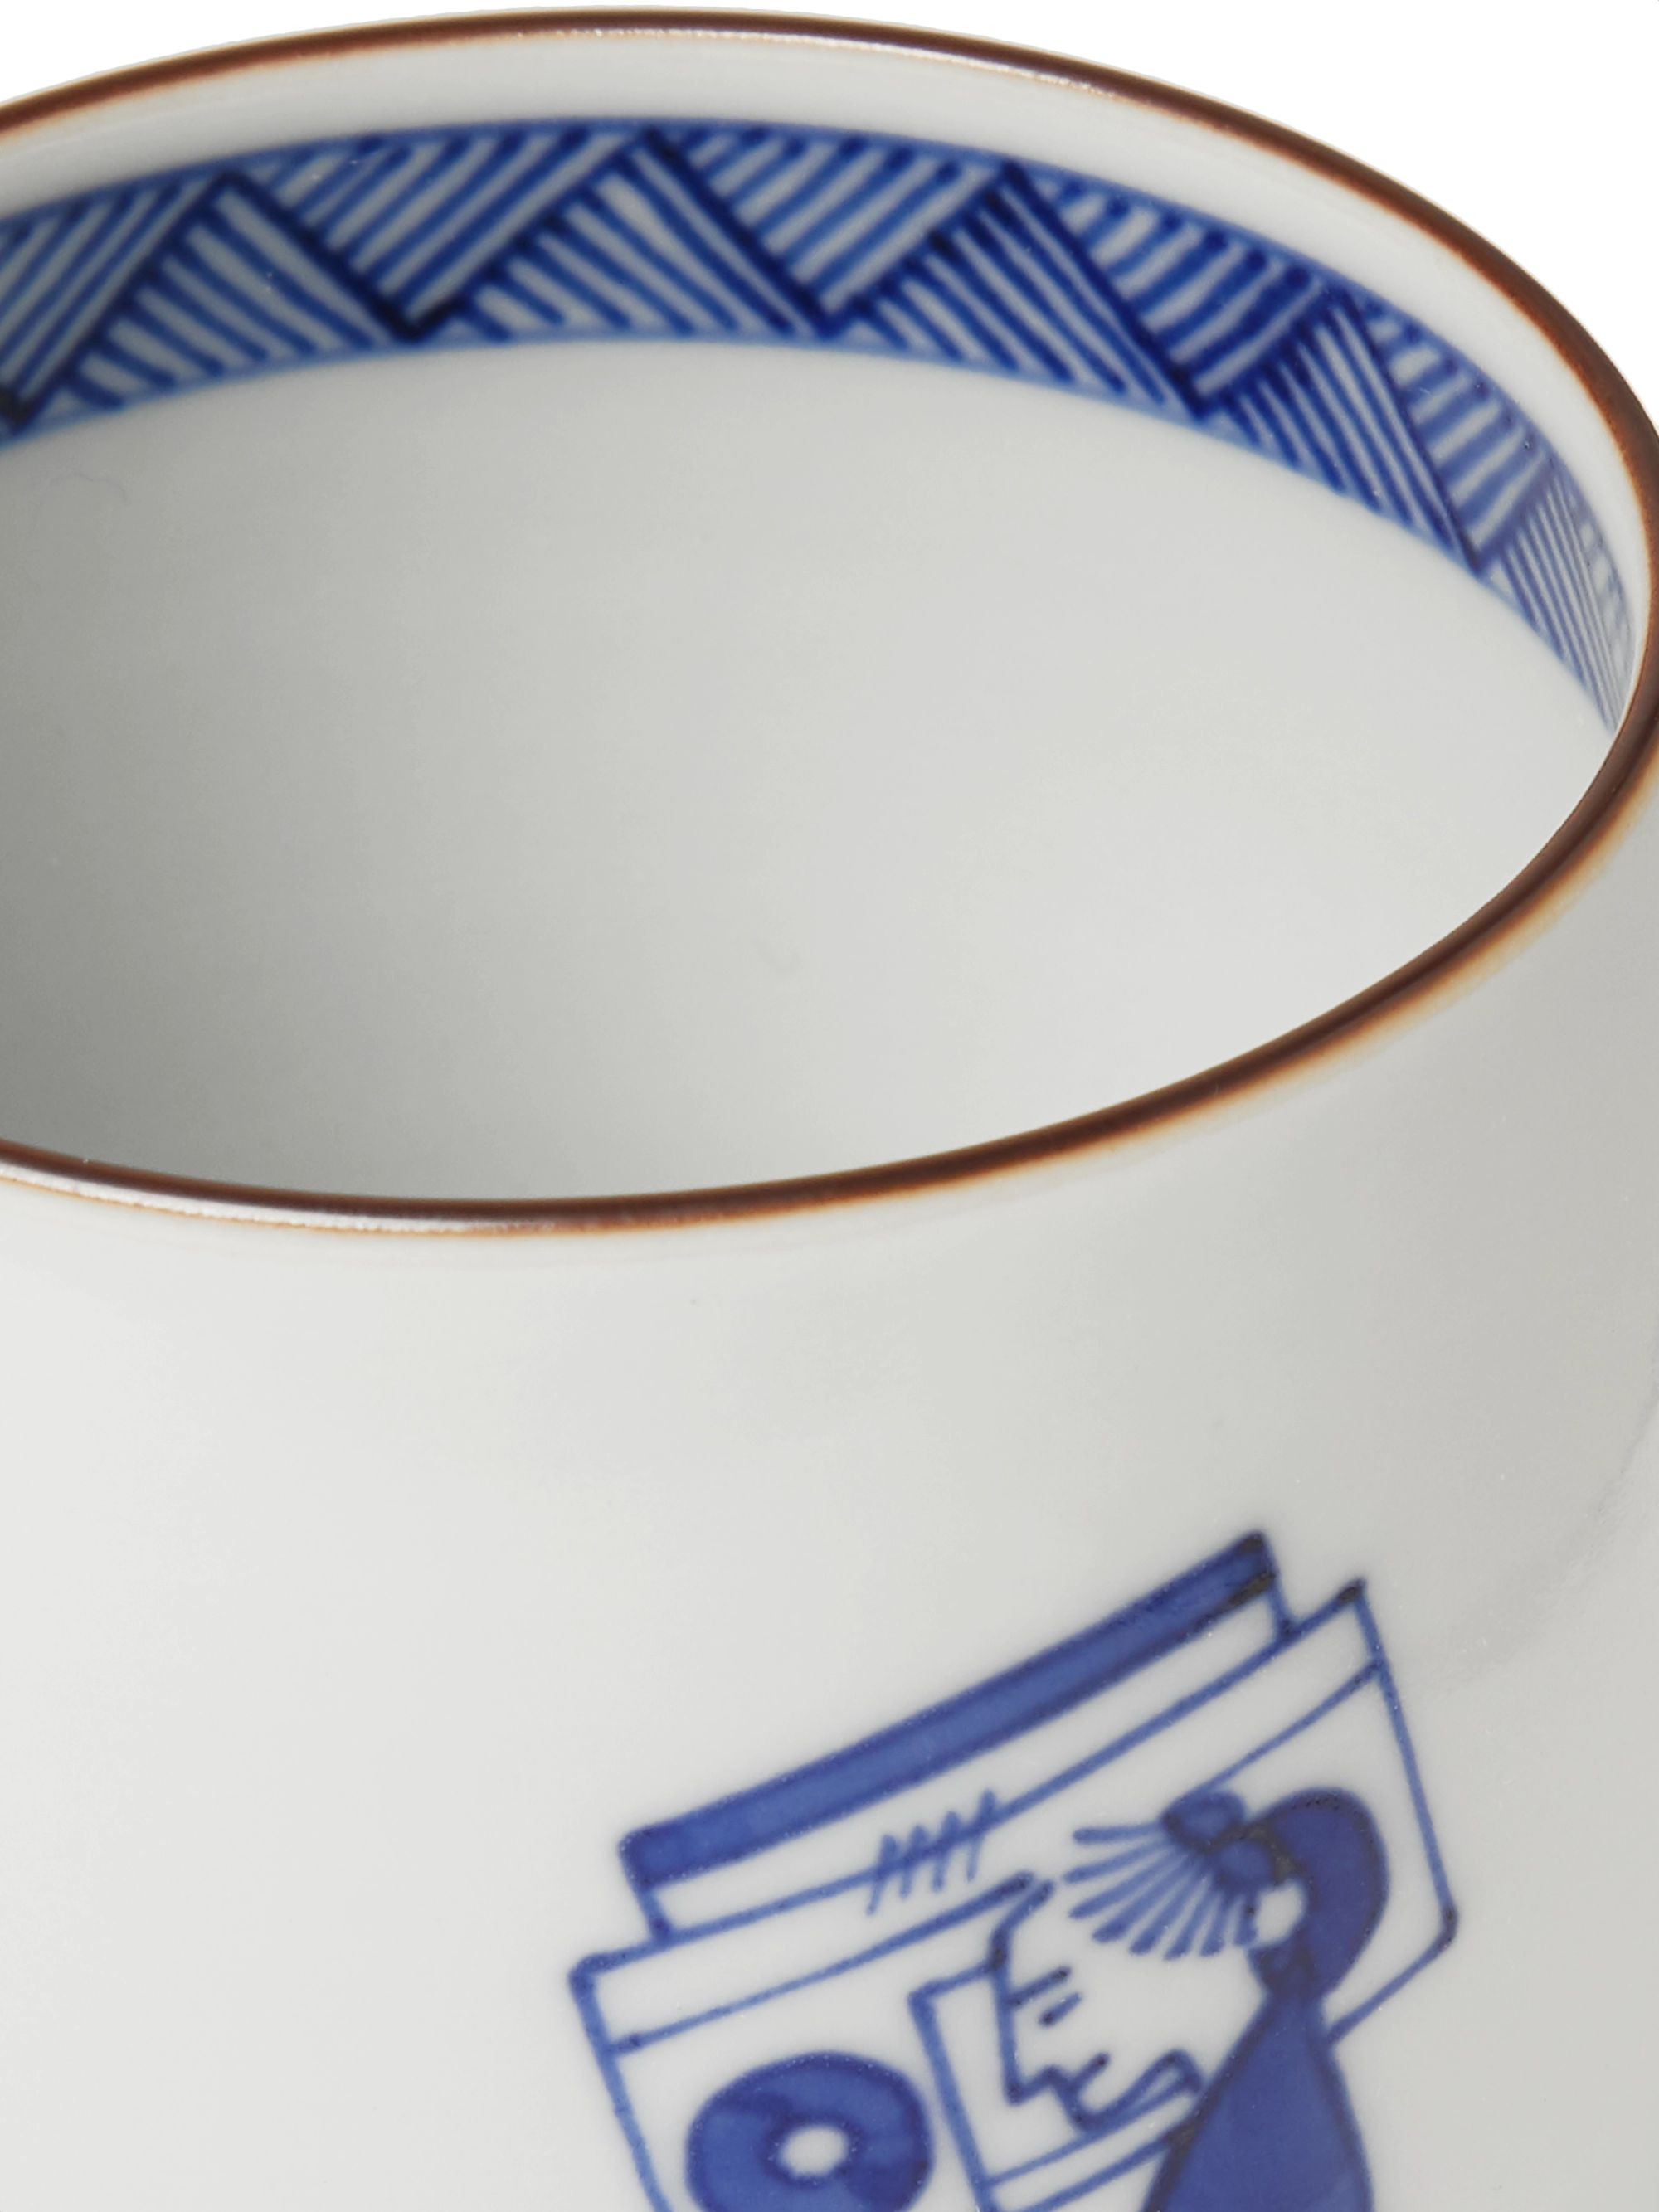 Japan Best Fuefuki Painted Porcelain Cup